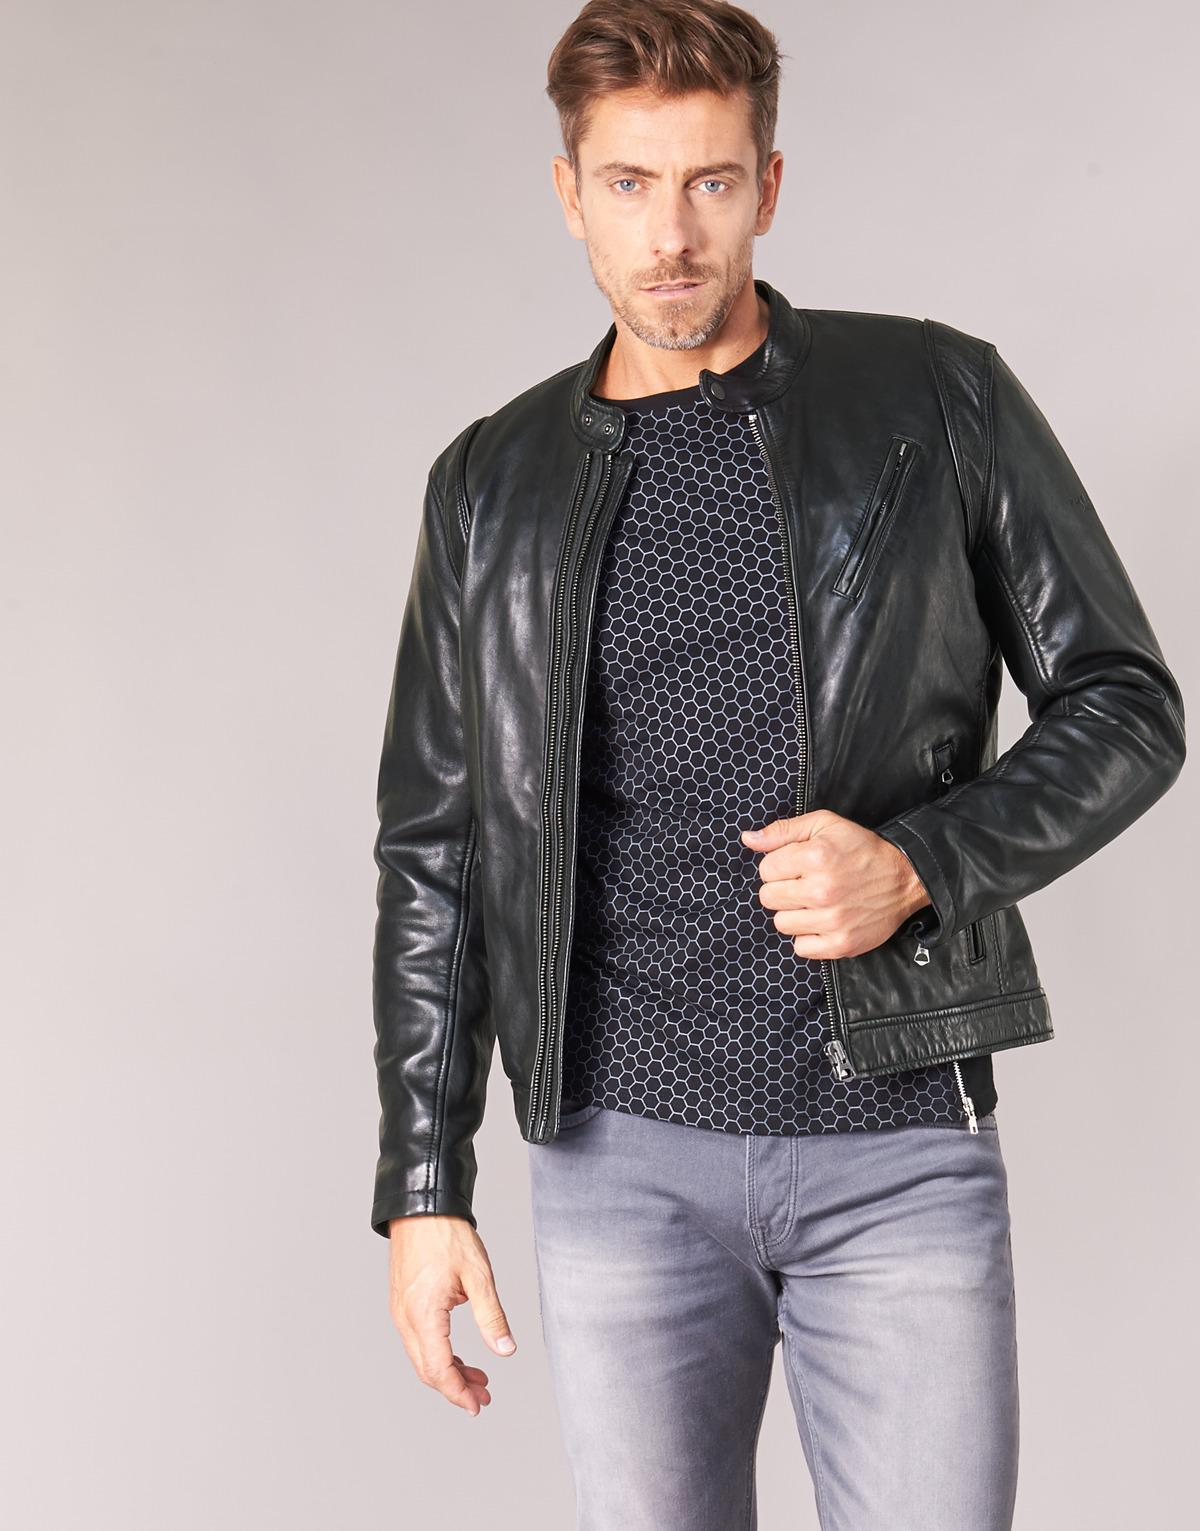 Pepe Jeans Culpeper Leather Jacket in Black for Men - Lyst 85080c6fe9